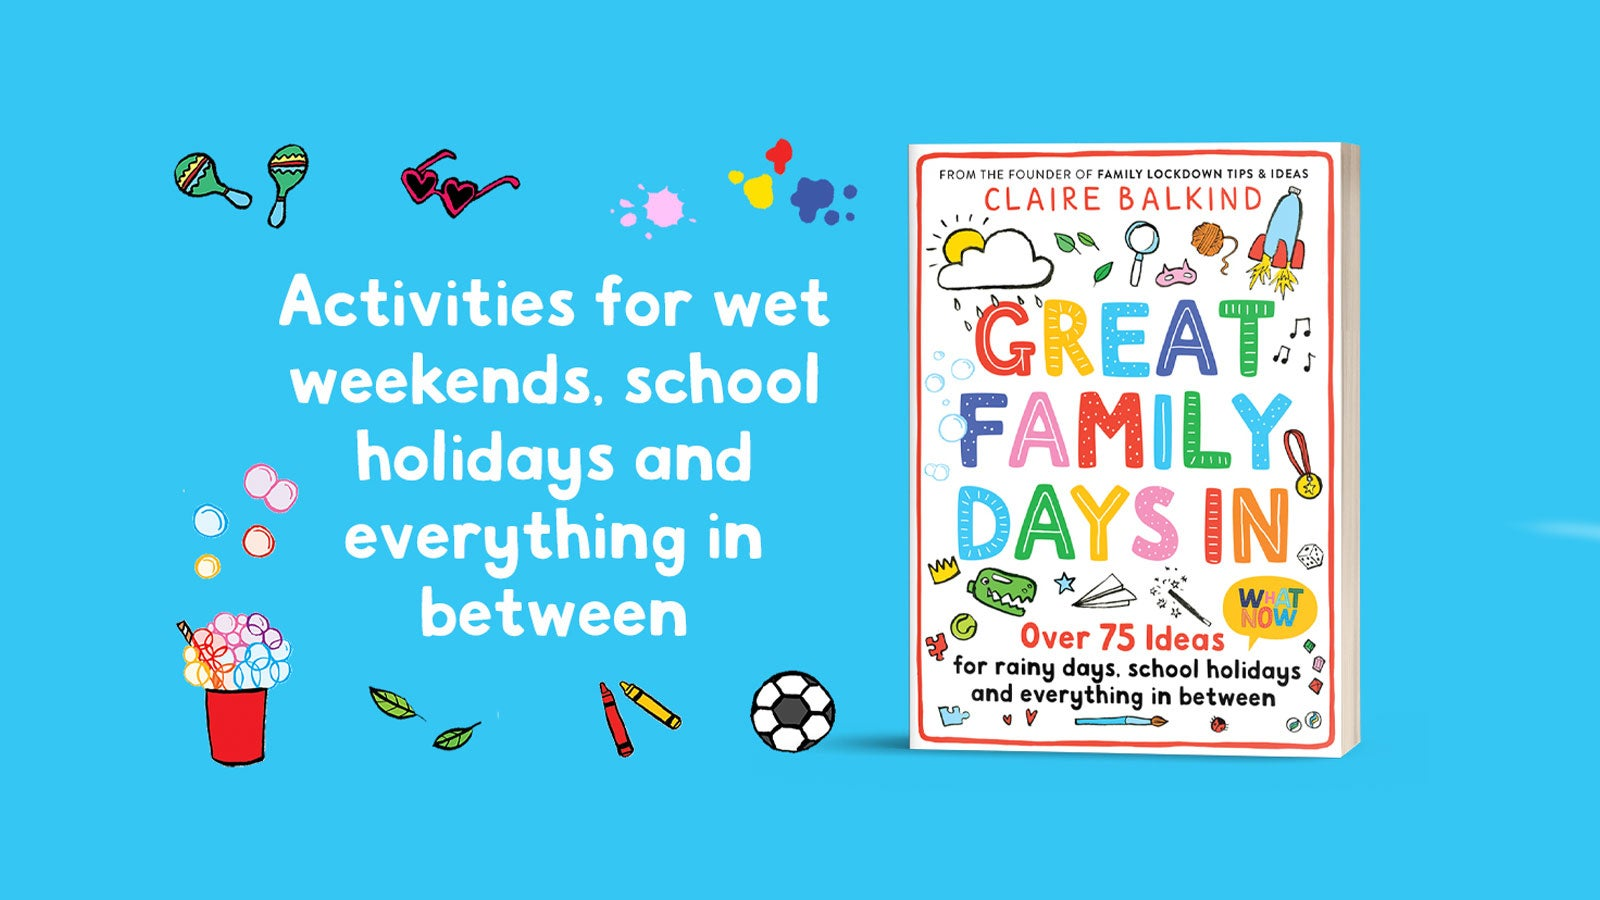 Great Family Days In book cover against a blue background